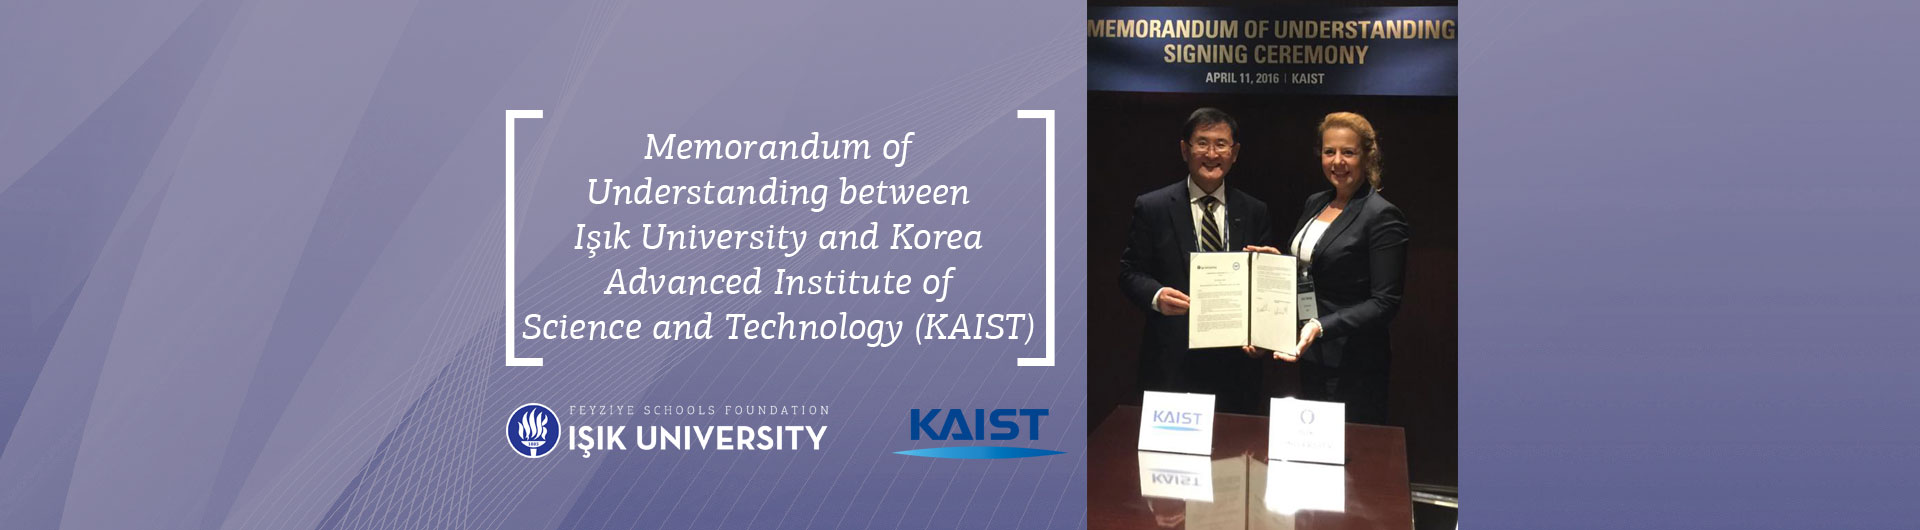 Memorandum of Understanding between Işık University and Korea Advanced Institute of Science and Technology (KAIST)